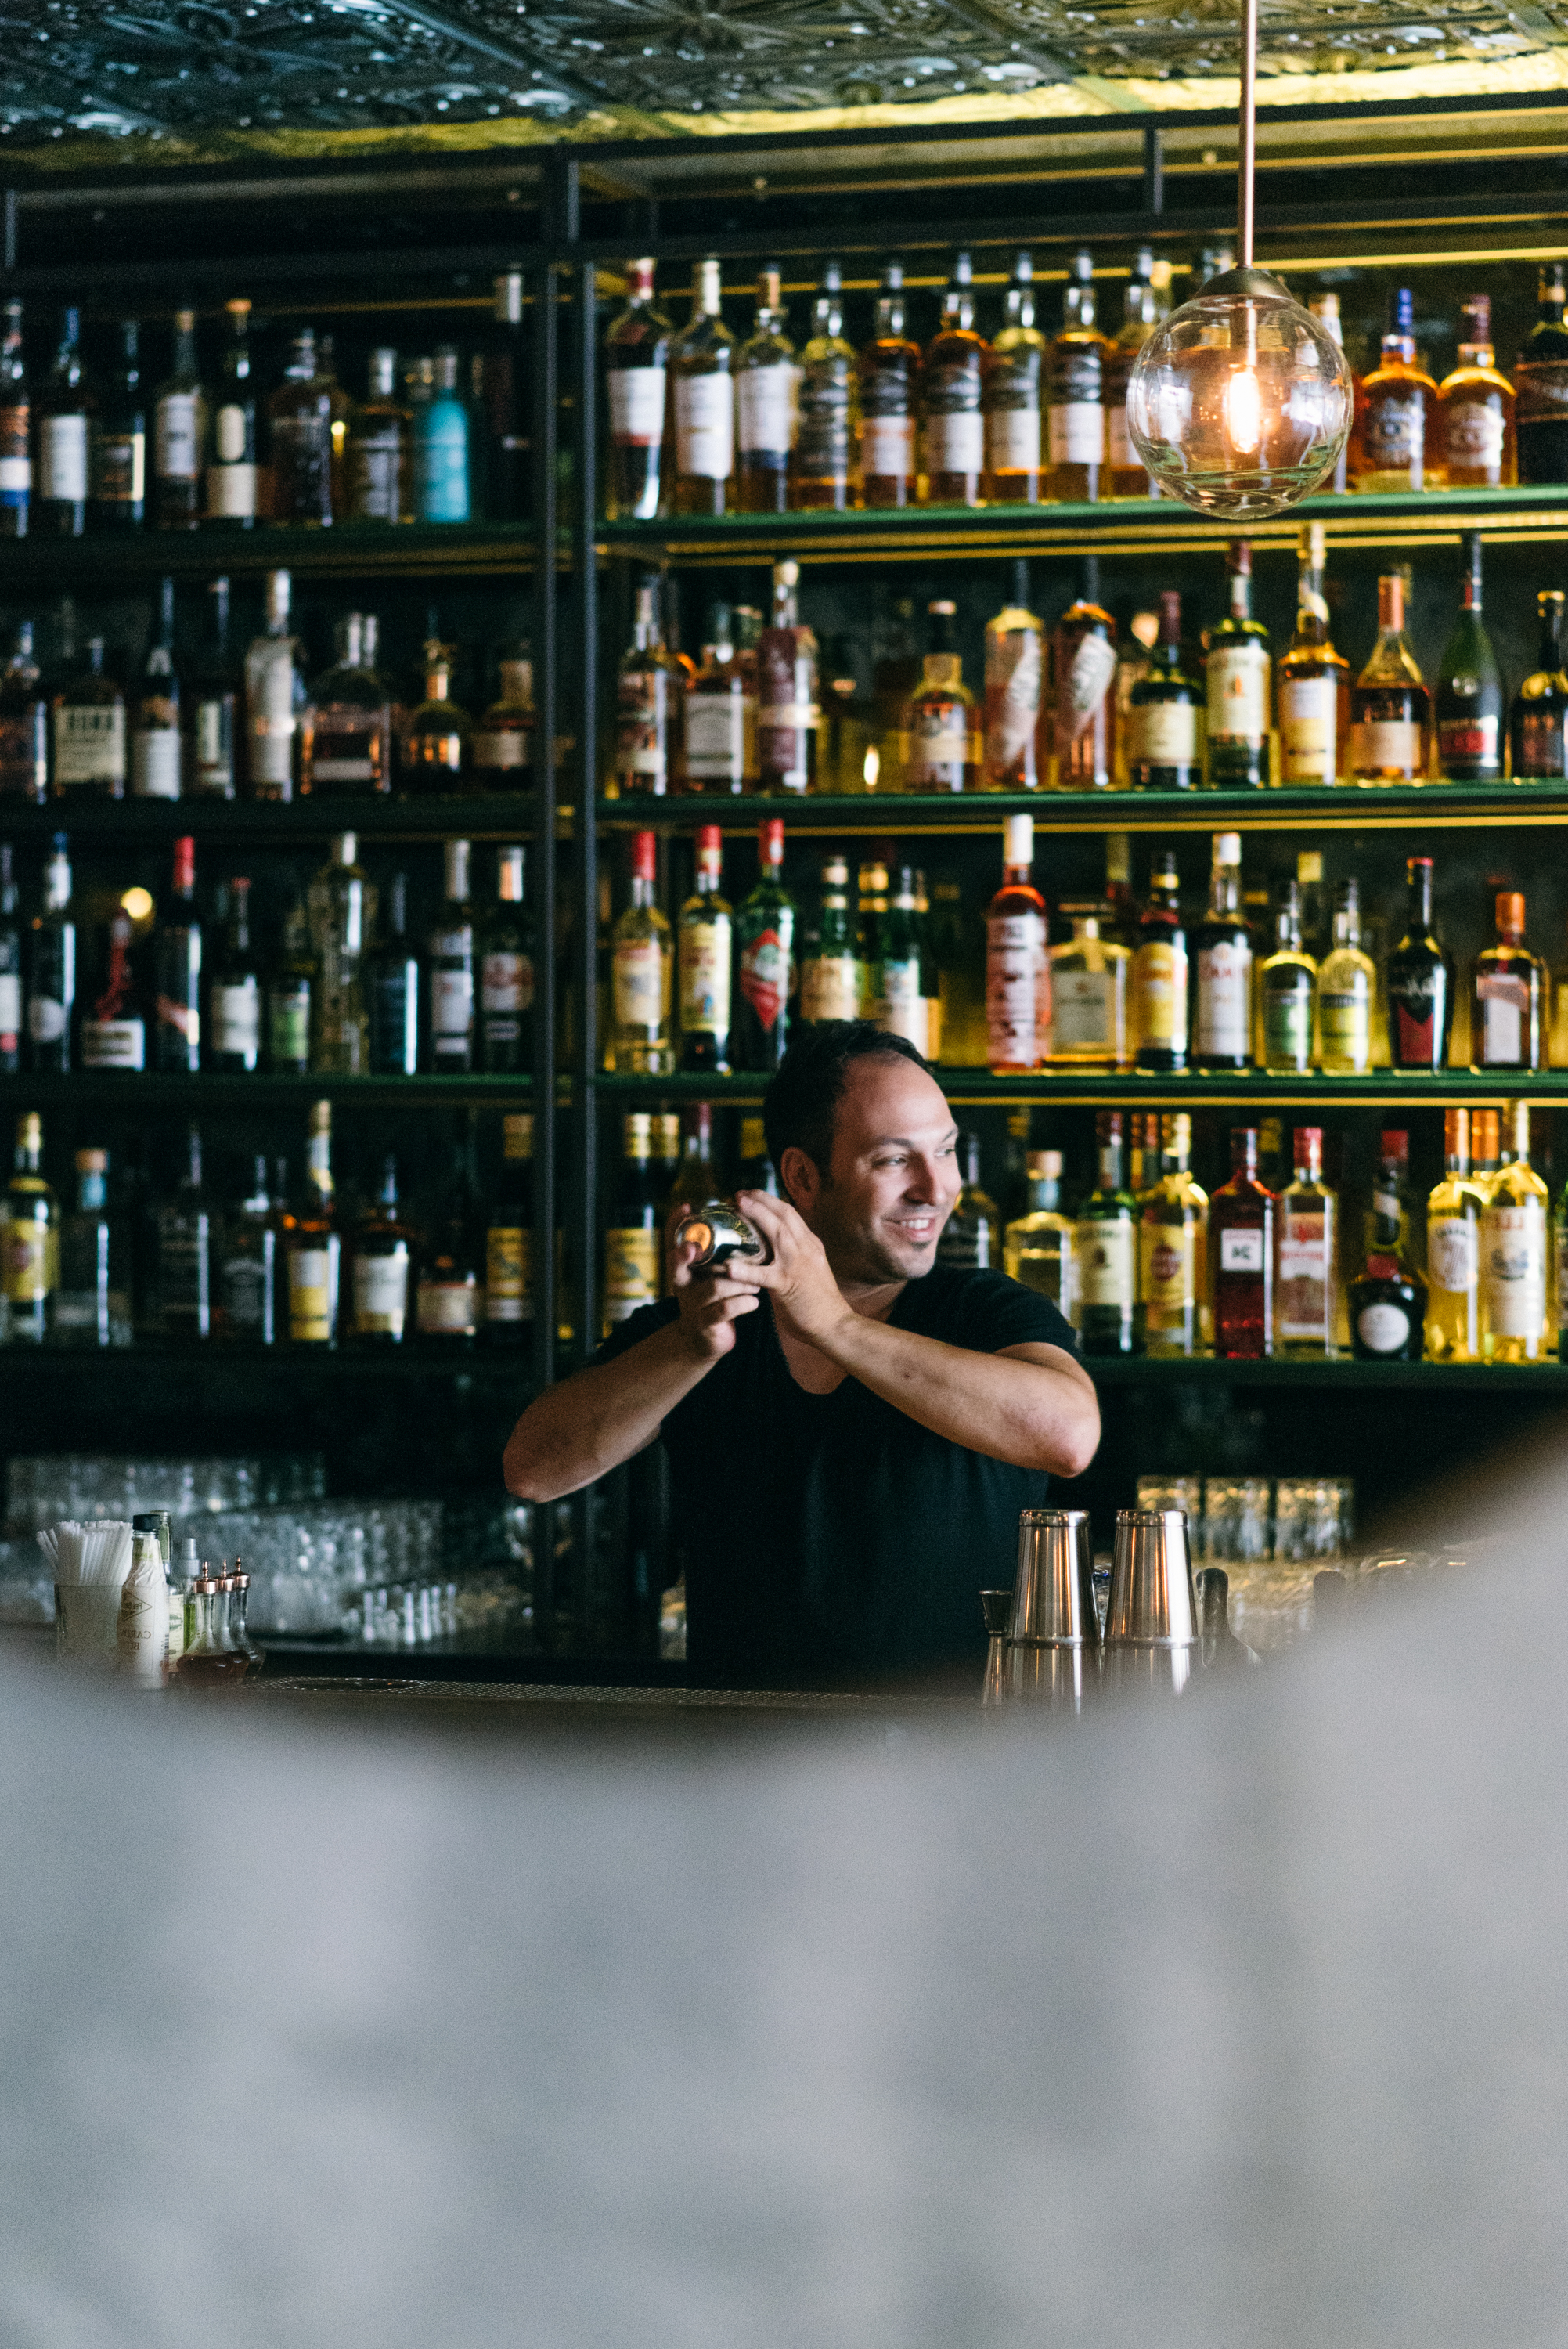 Co-owner and bar manager Brad